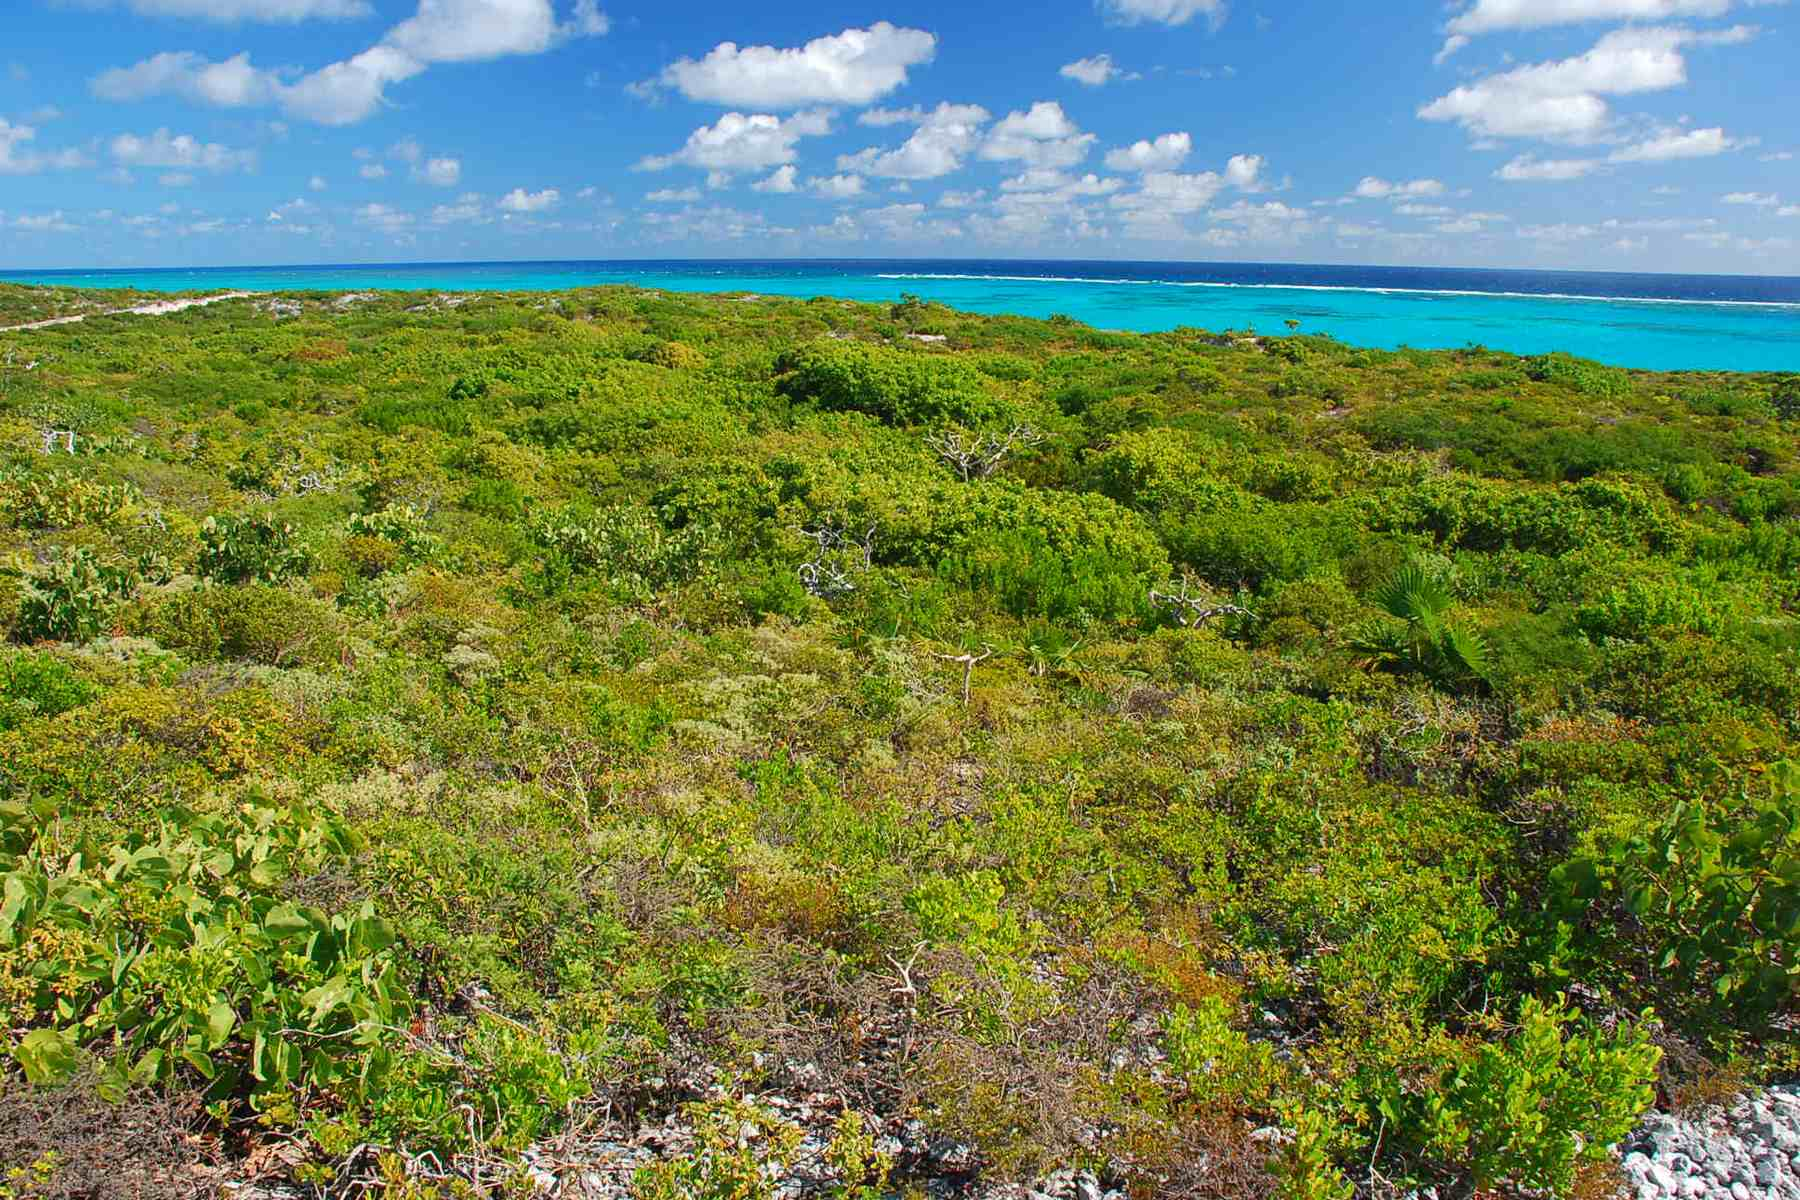 Additional photo for property listing at Oceanfront Lot 1206 Sailrock, South Caicos Turks And Caicos Islands